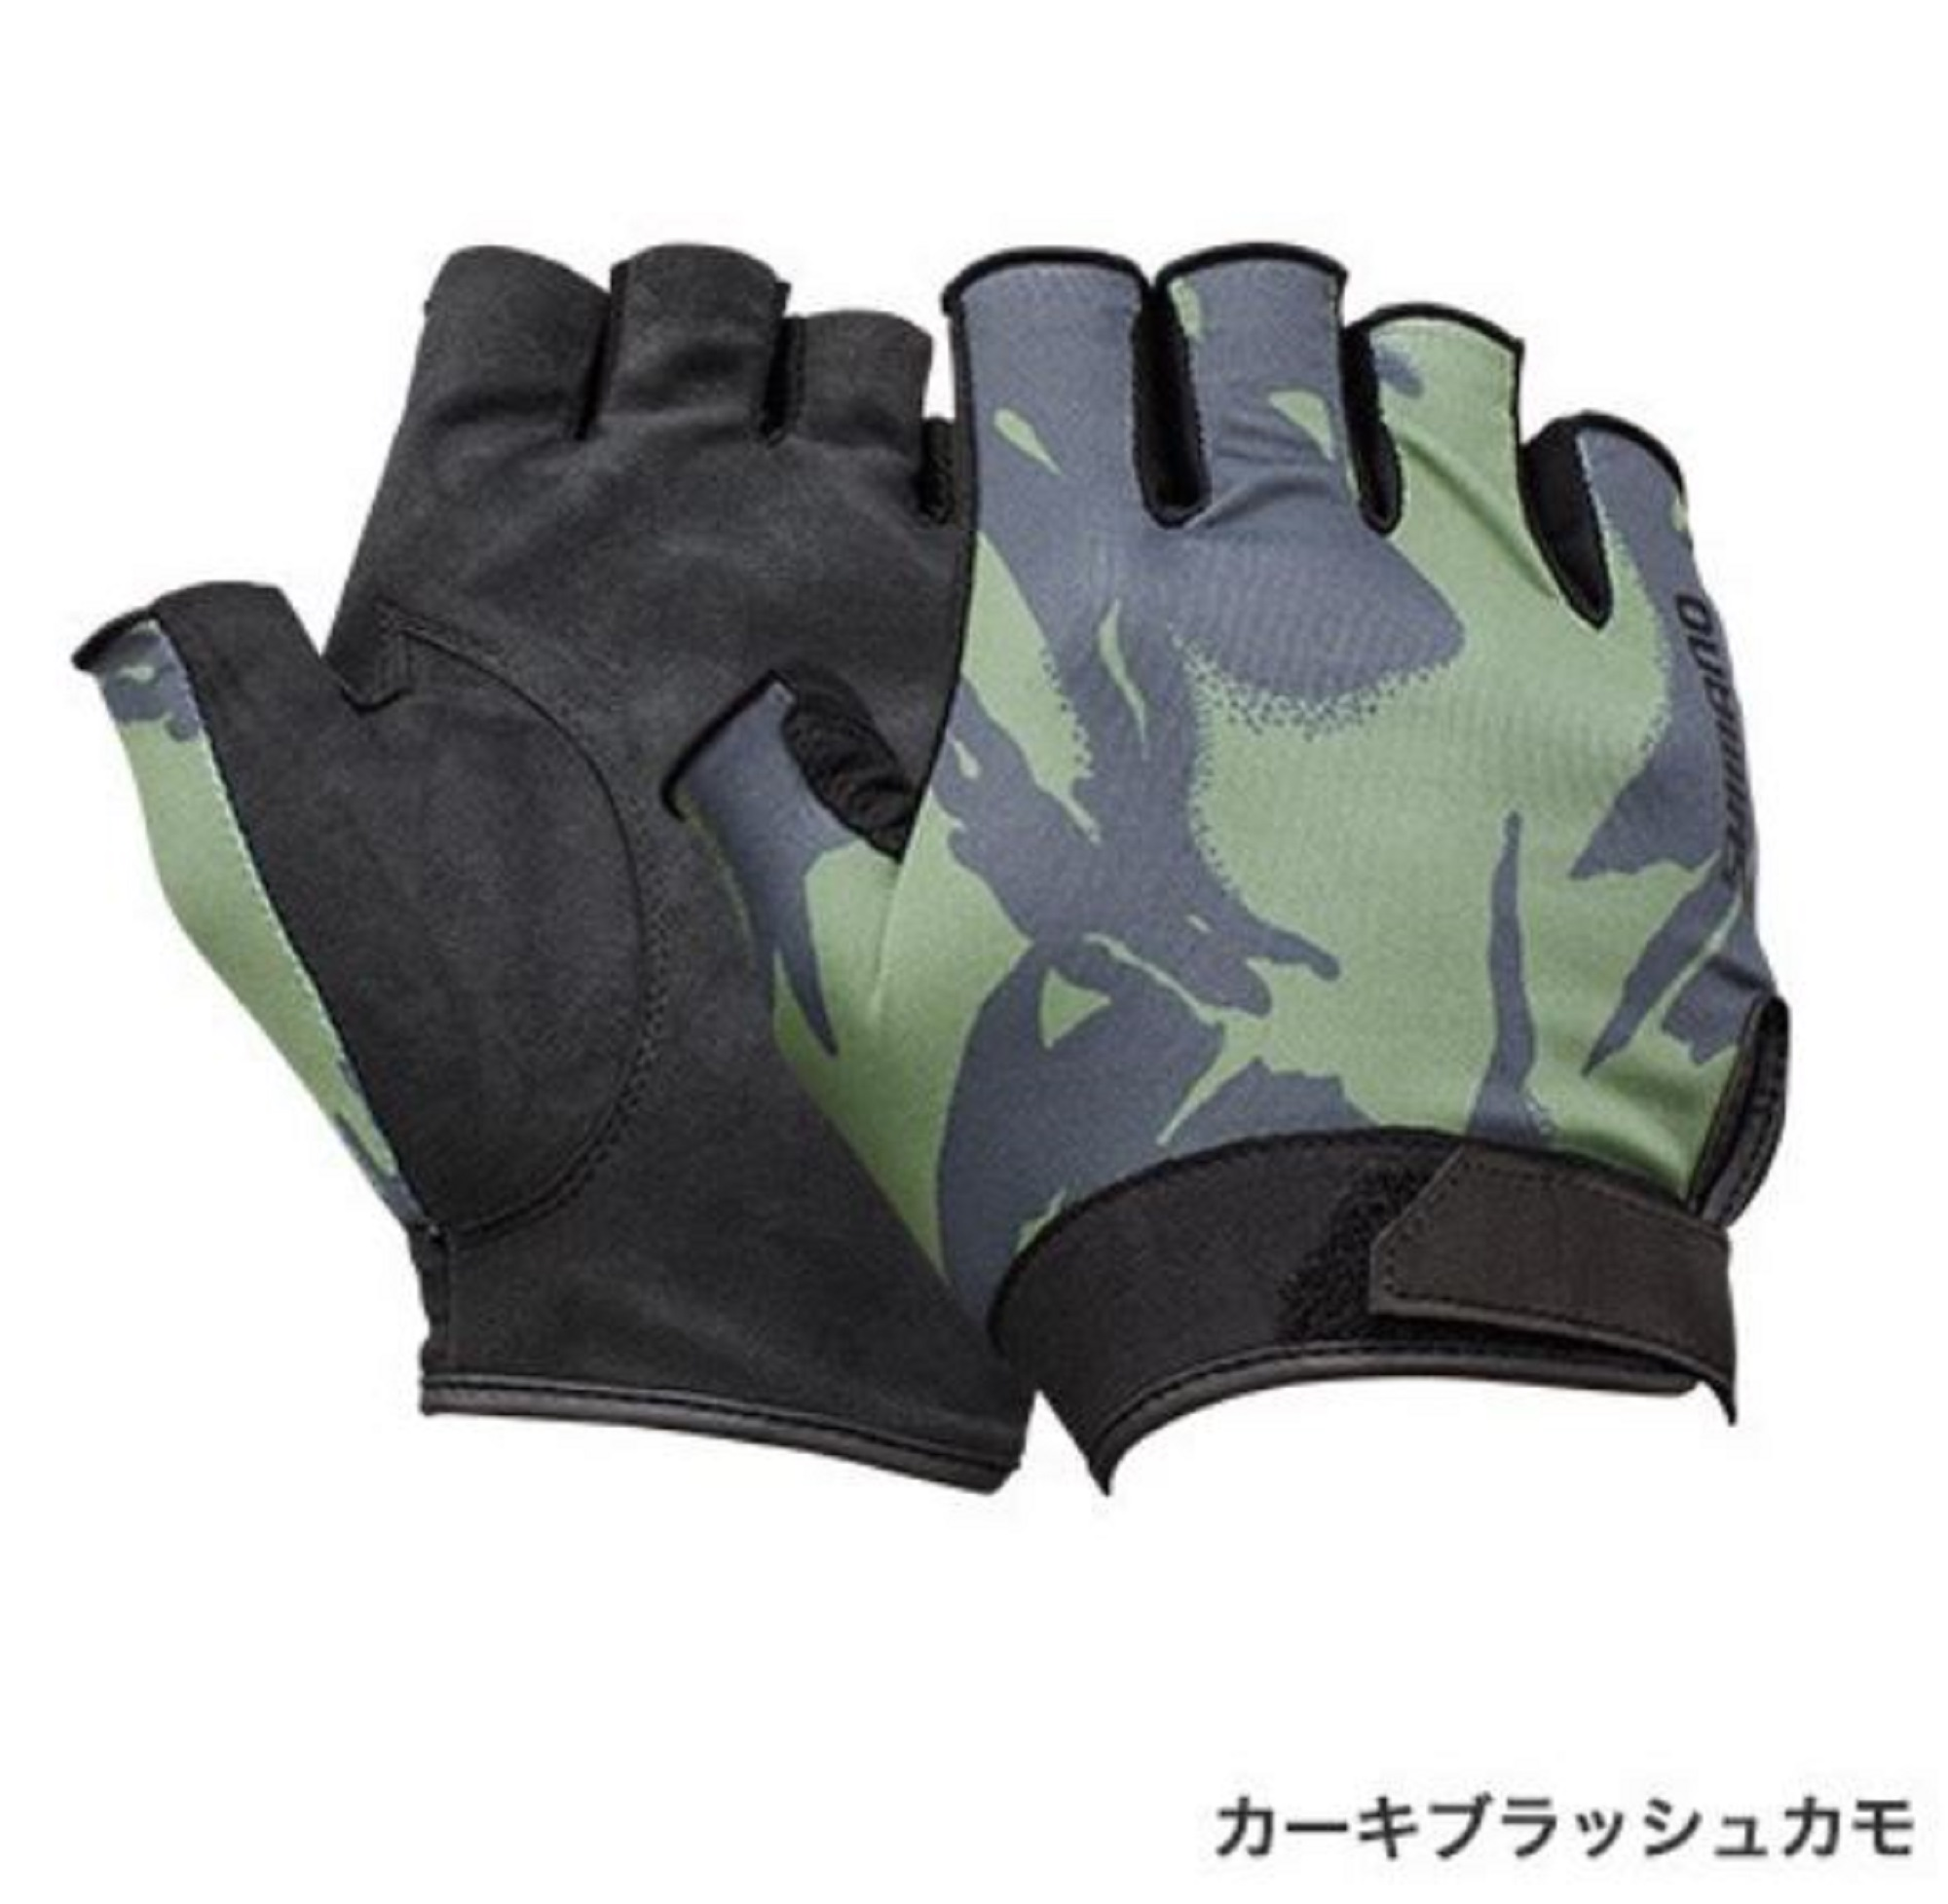 Shimano GL-012T Gloves Casting 5 Fingerless Green Camo Size L 669360